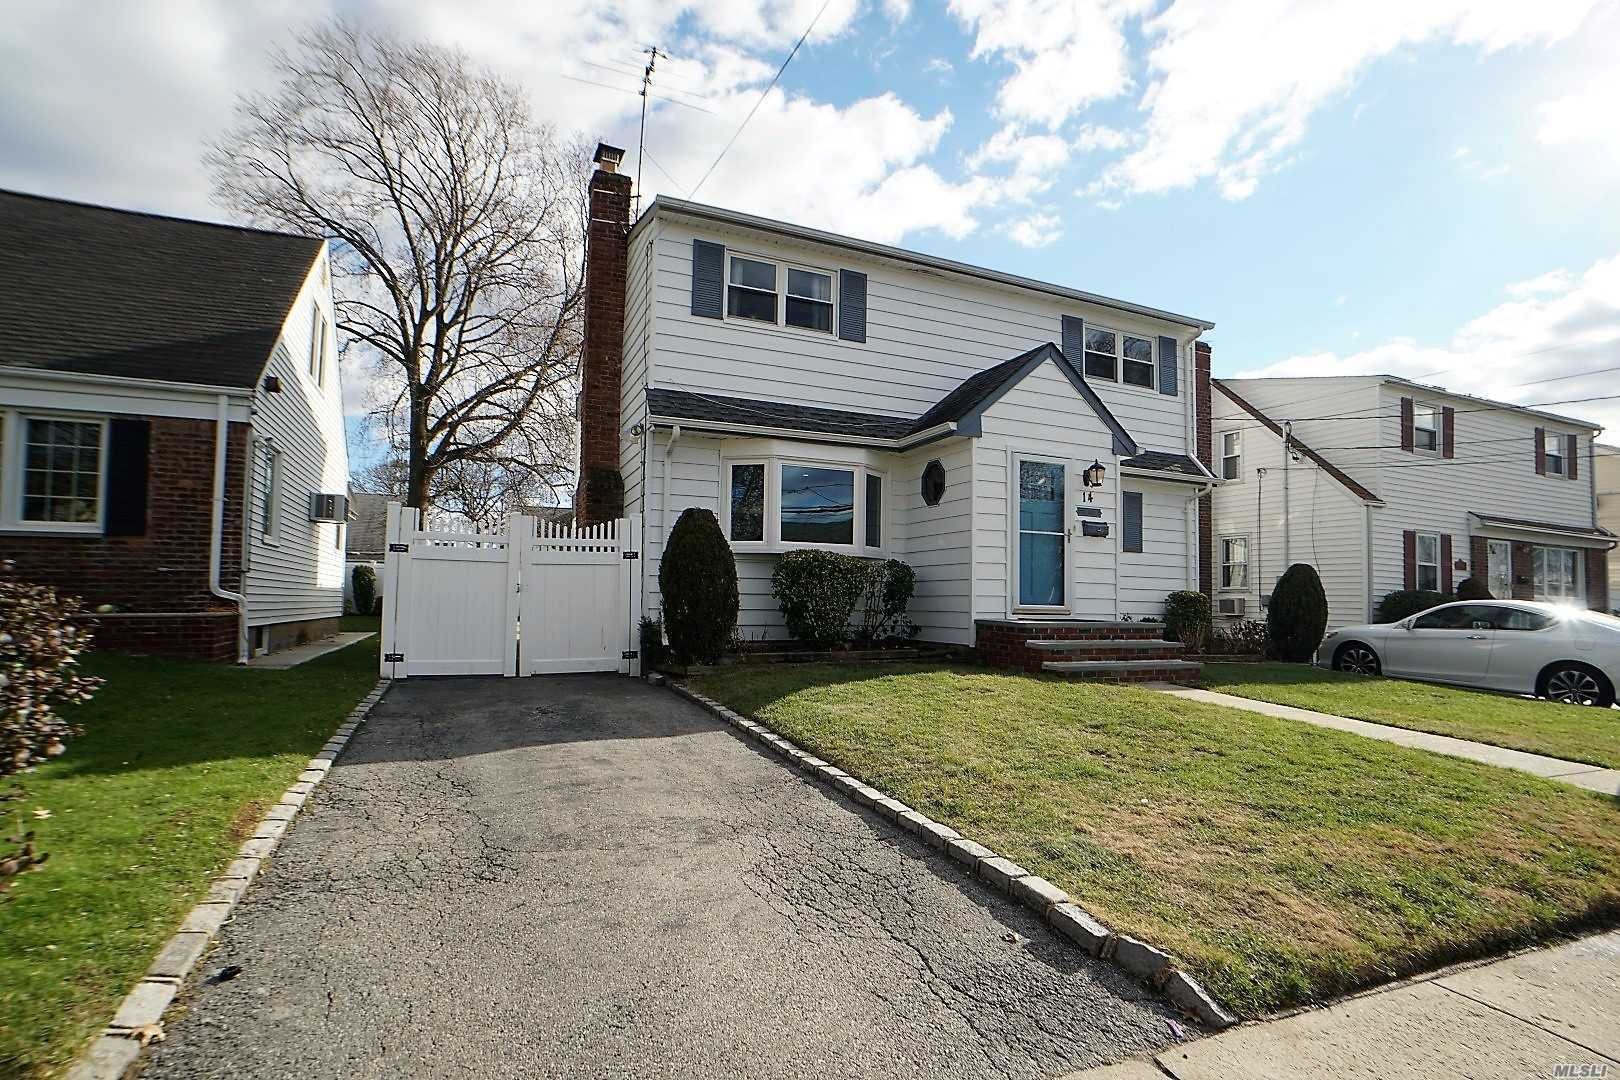 Generously-Sized 2 Story Beautiful Colonial Featuring A Full Finished Basement, 3 Bedrooms And 1.5 Bath. Open Concept Living Room Featuring A Magnificent Classic Brick Wood Burning Fireplace And Grand Bar. The Backyard Features A Cozy Cement Patio, Dollhouse Like Shed And An Extended Driveway With More Than Enough Room To Play. Valley Stream School District. Close To Shopping, Public Transportation And Highways.